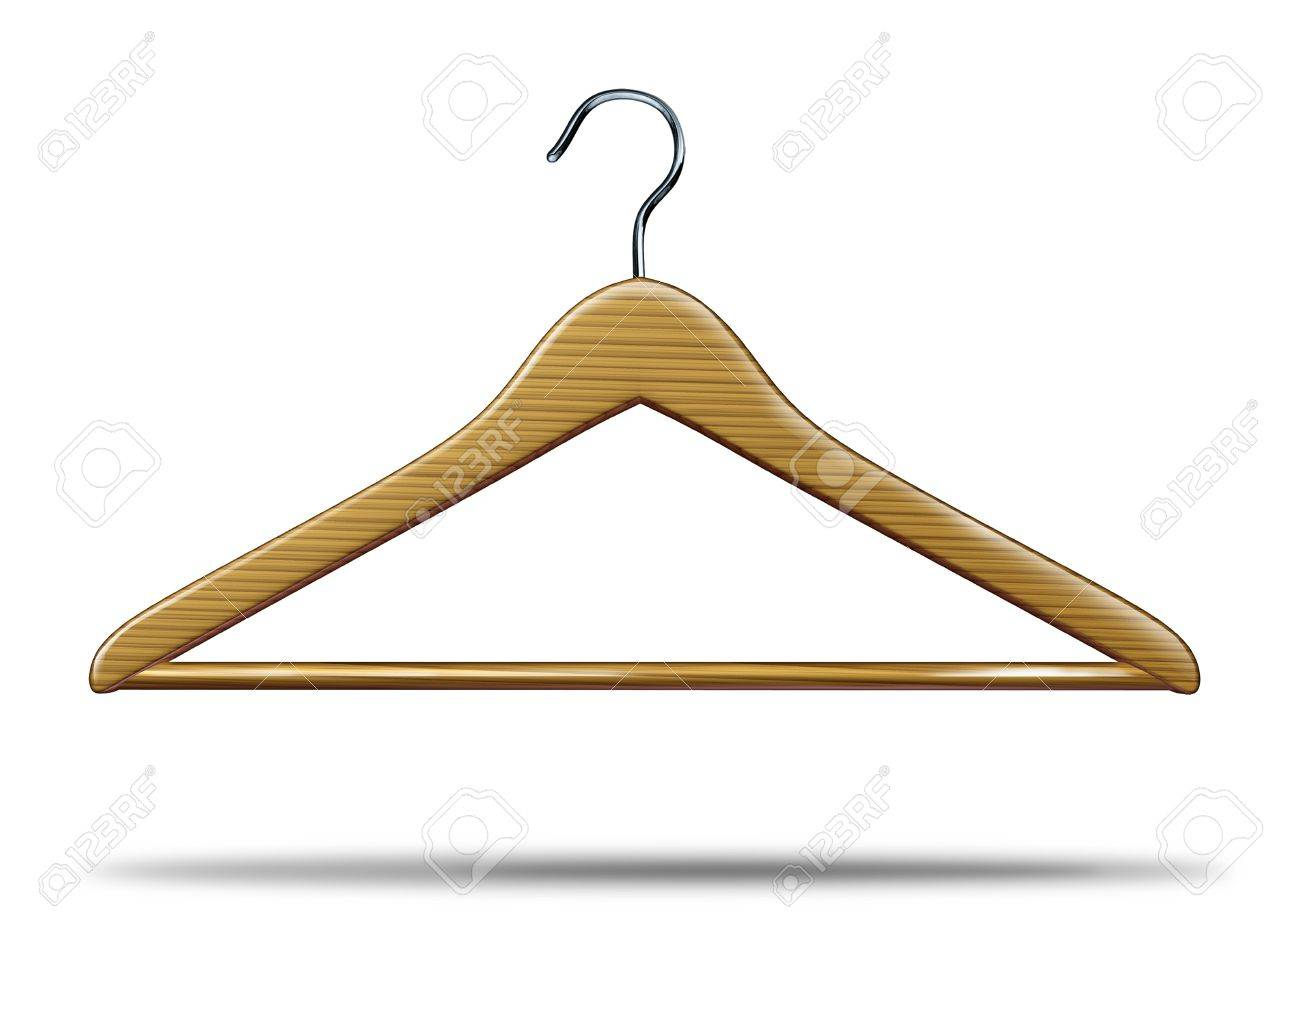 Stock Images similar to ID 111110555 - elements of clothing store